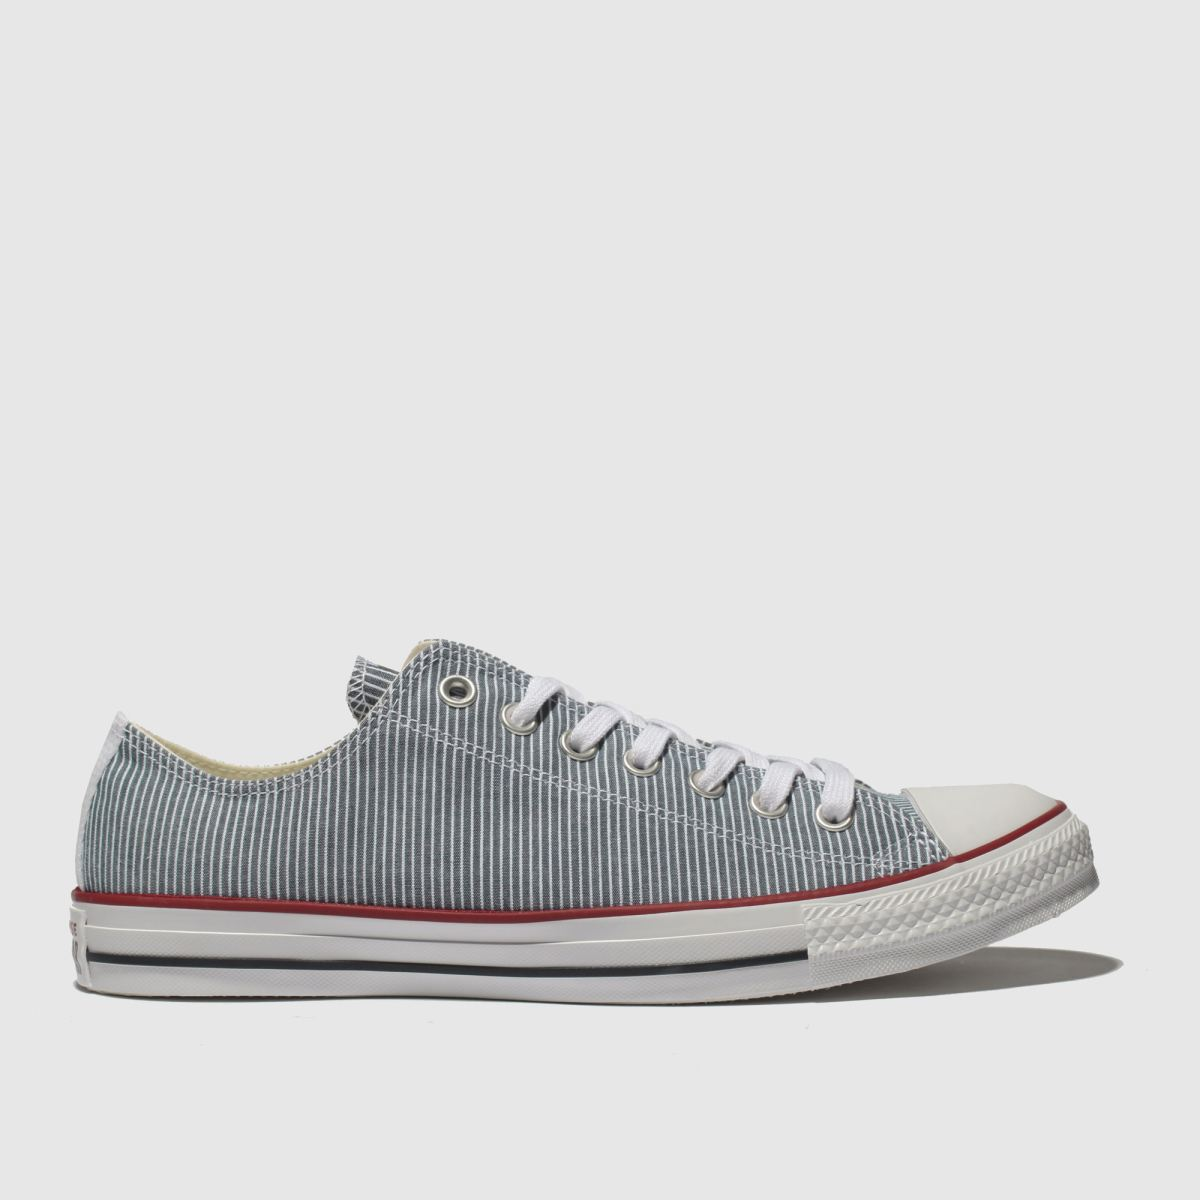 Converse White & Blue Chuck Taylor All Star Ox Trainers